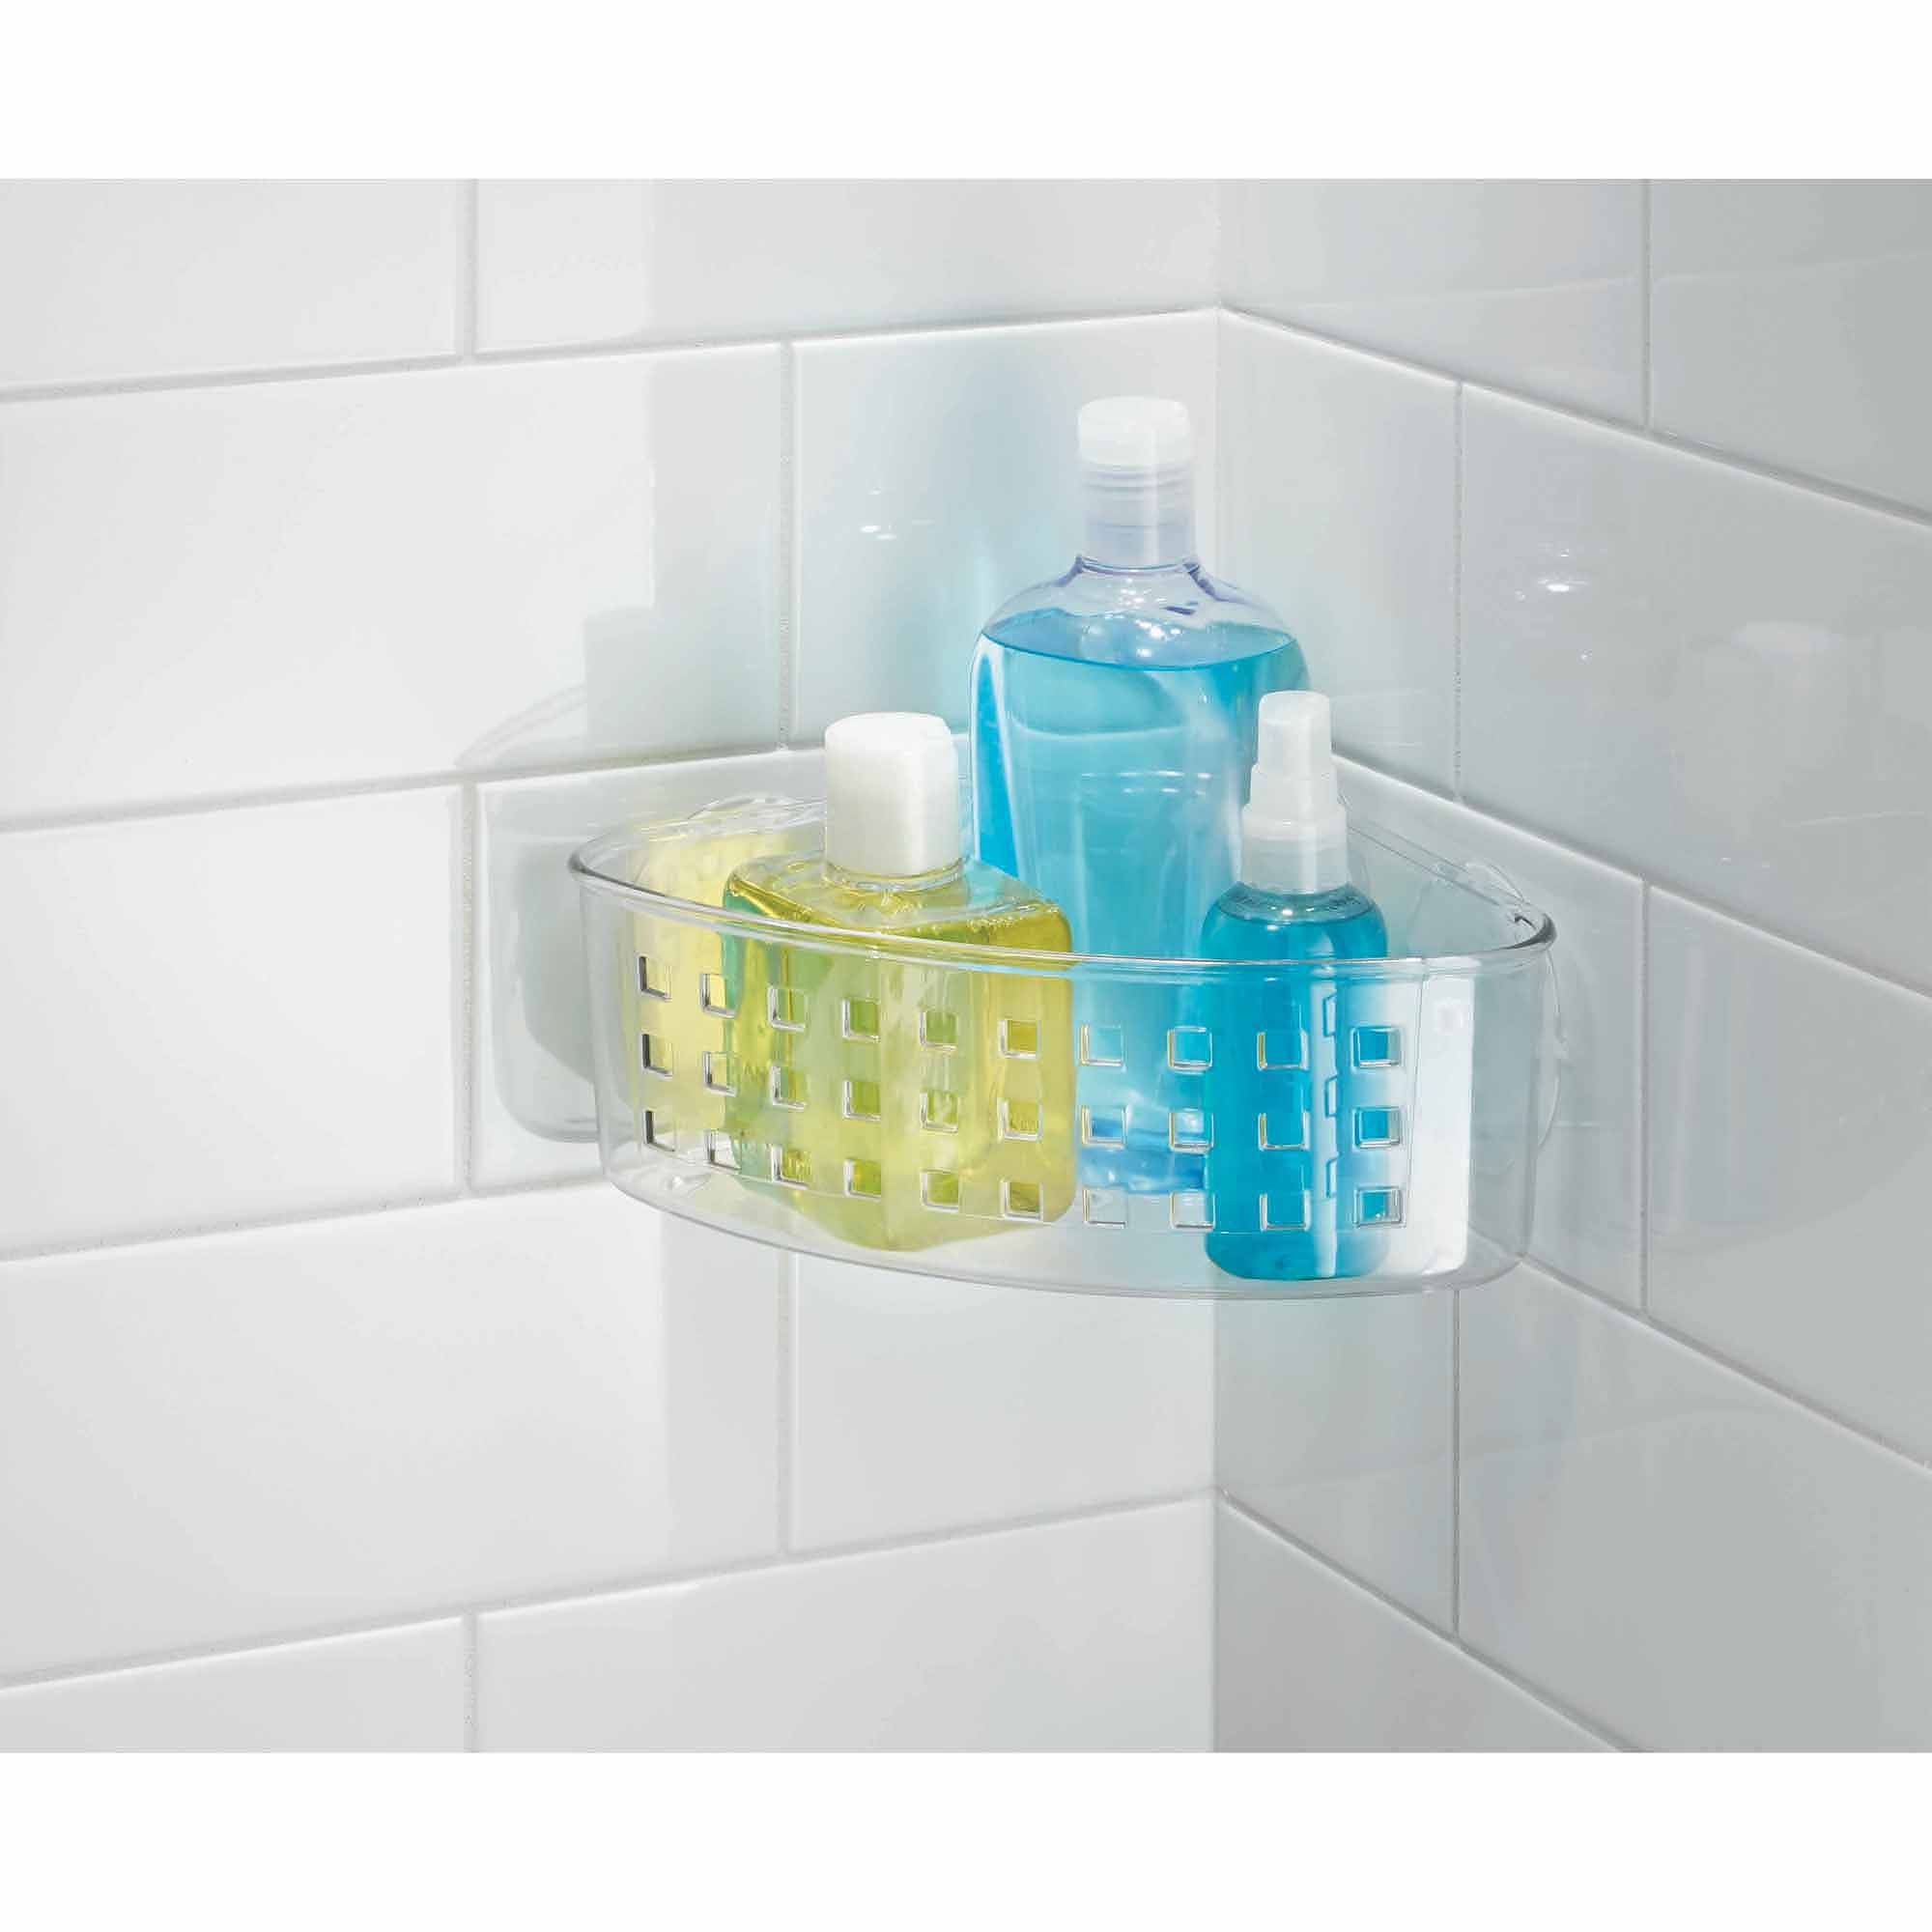 InterDesign Bathroom Shower Suction Corner Basket for Shampoo ...